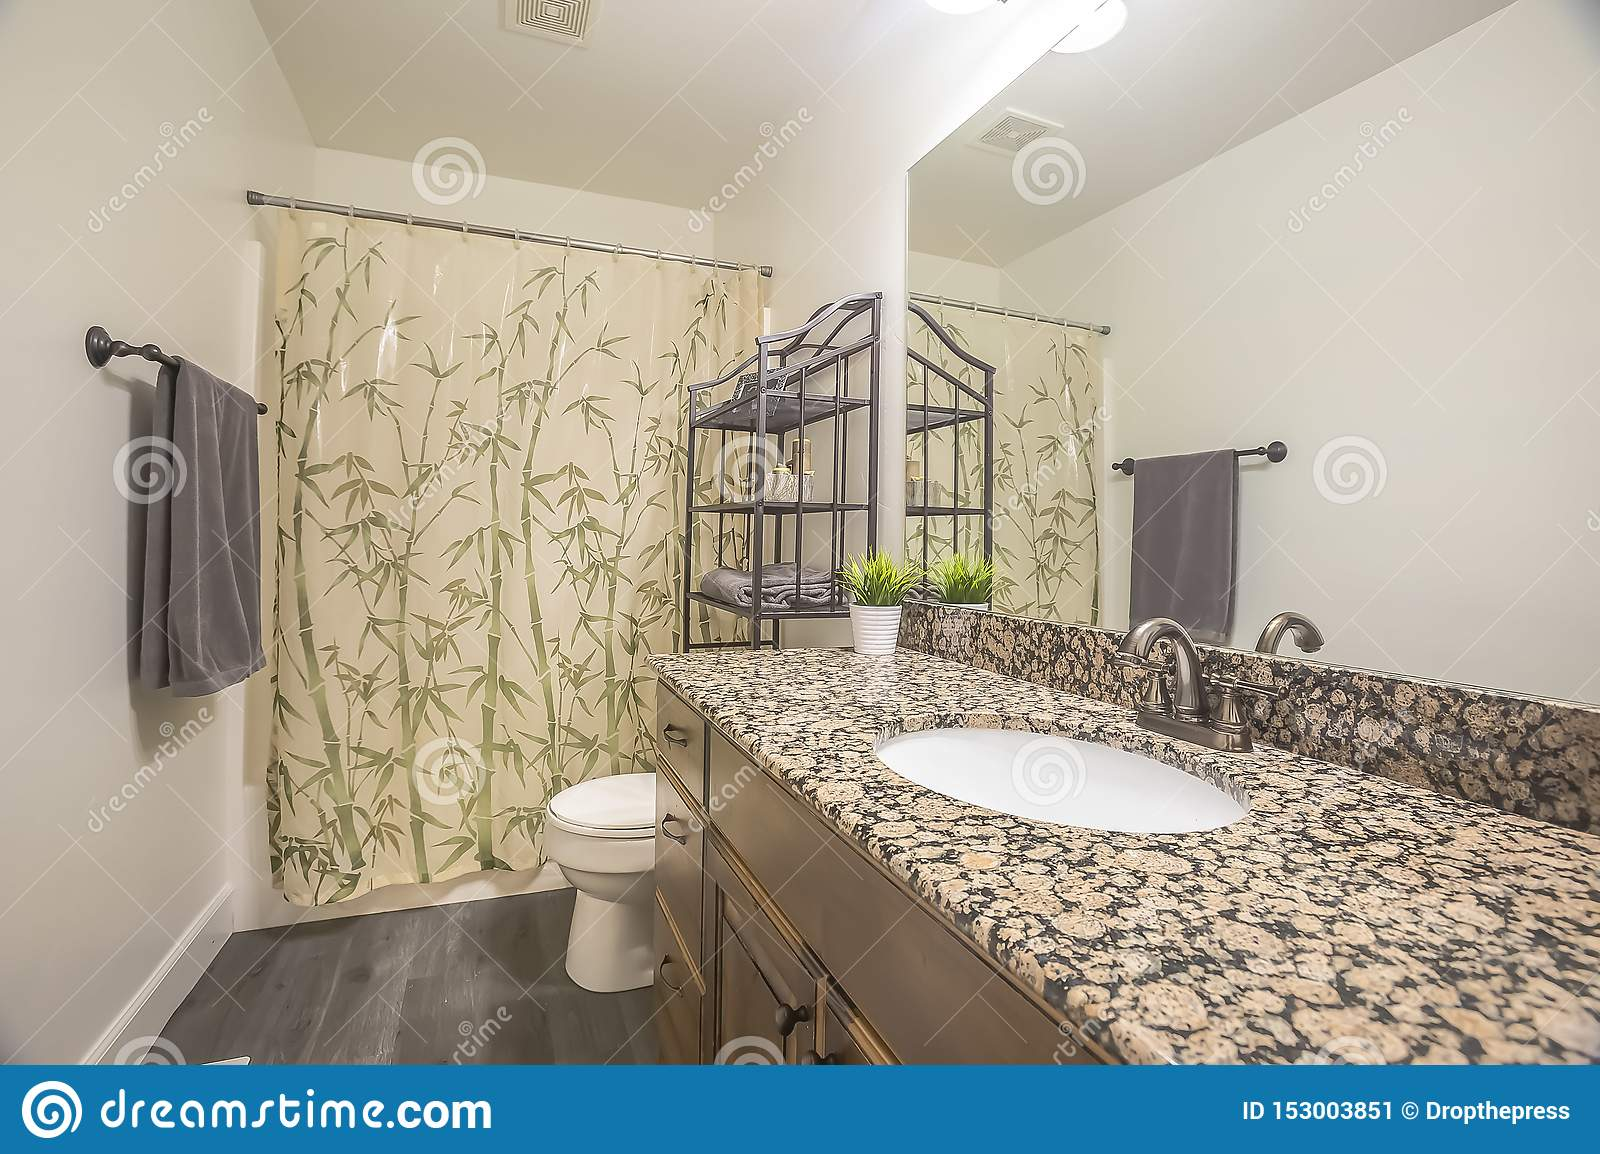 Bathroom Interior Of A Home With Gray Wood Floor And White Wall Stock Image Image Of Wall Architecture 153003851